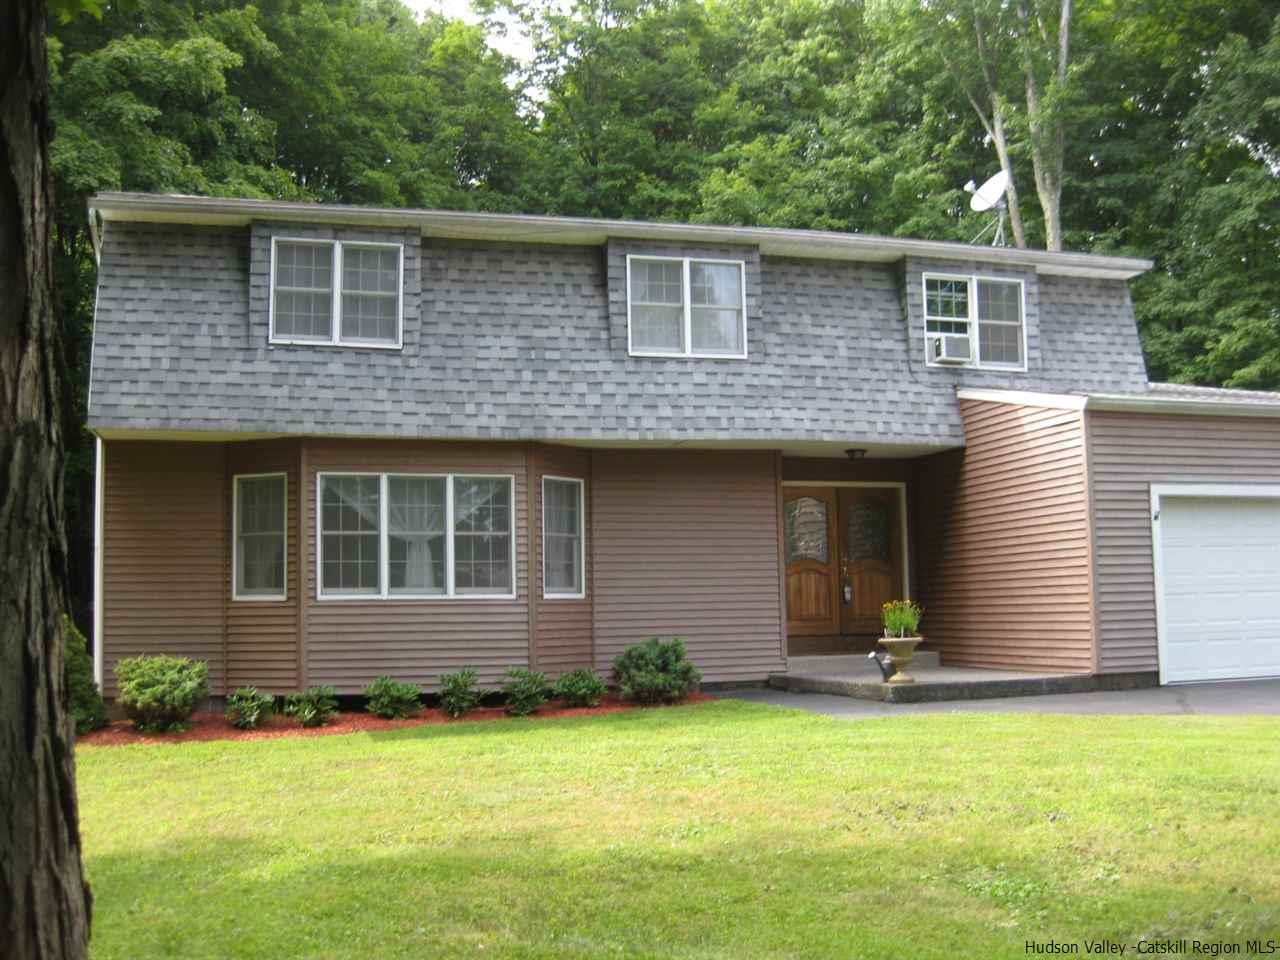 Single Family Home for Sale at 252 Vly Atwood Road 252 Vly Atwood Road Stone Ridge, New York 12484 United States